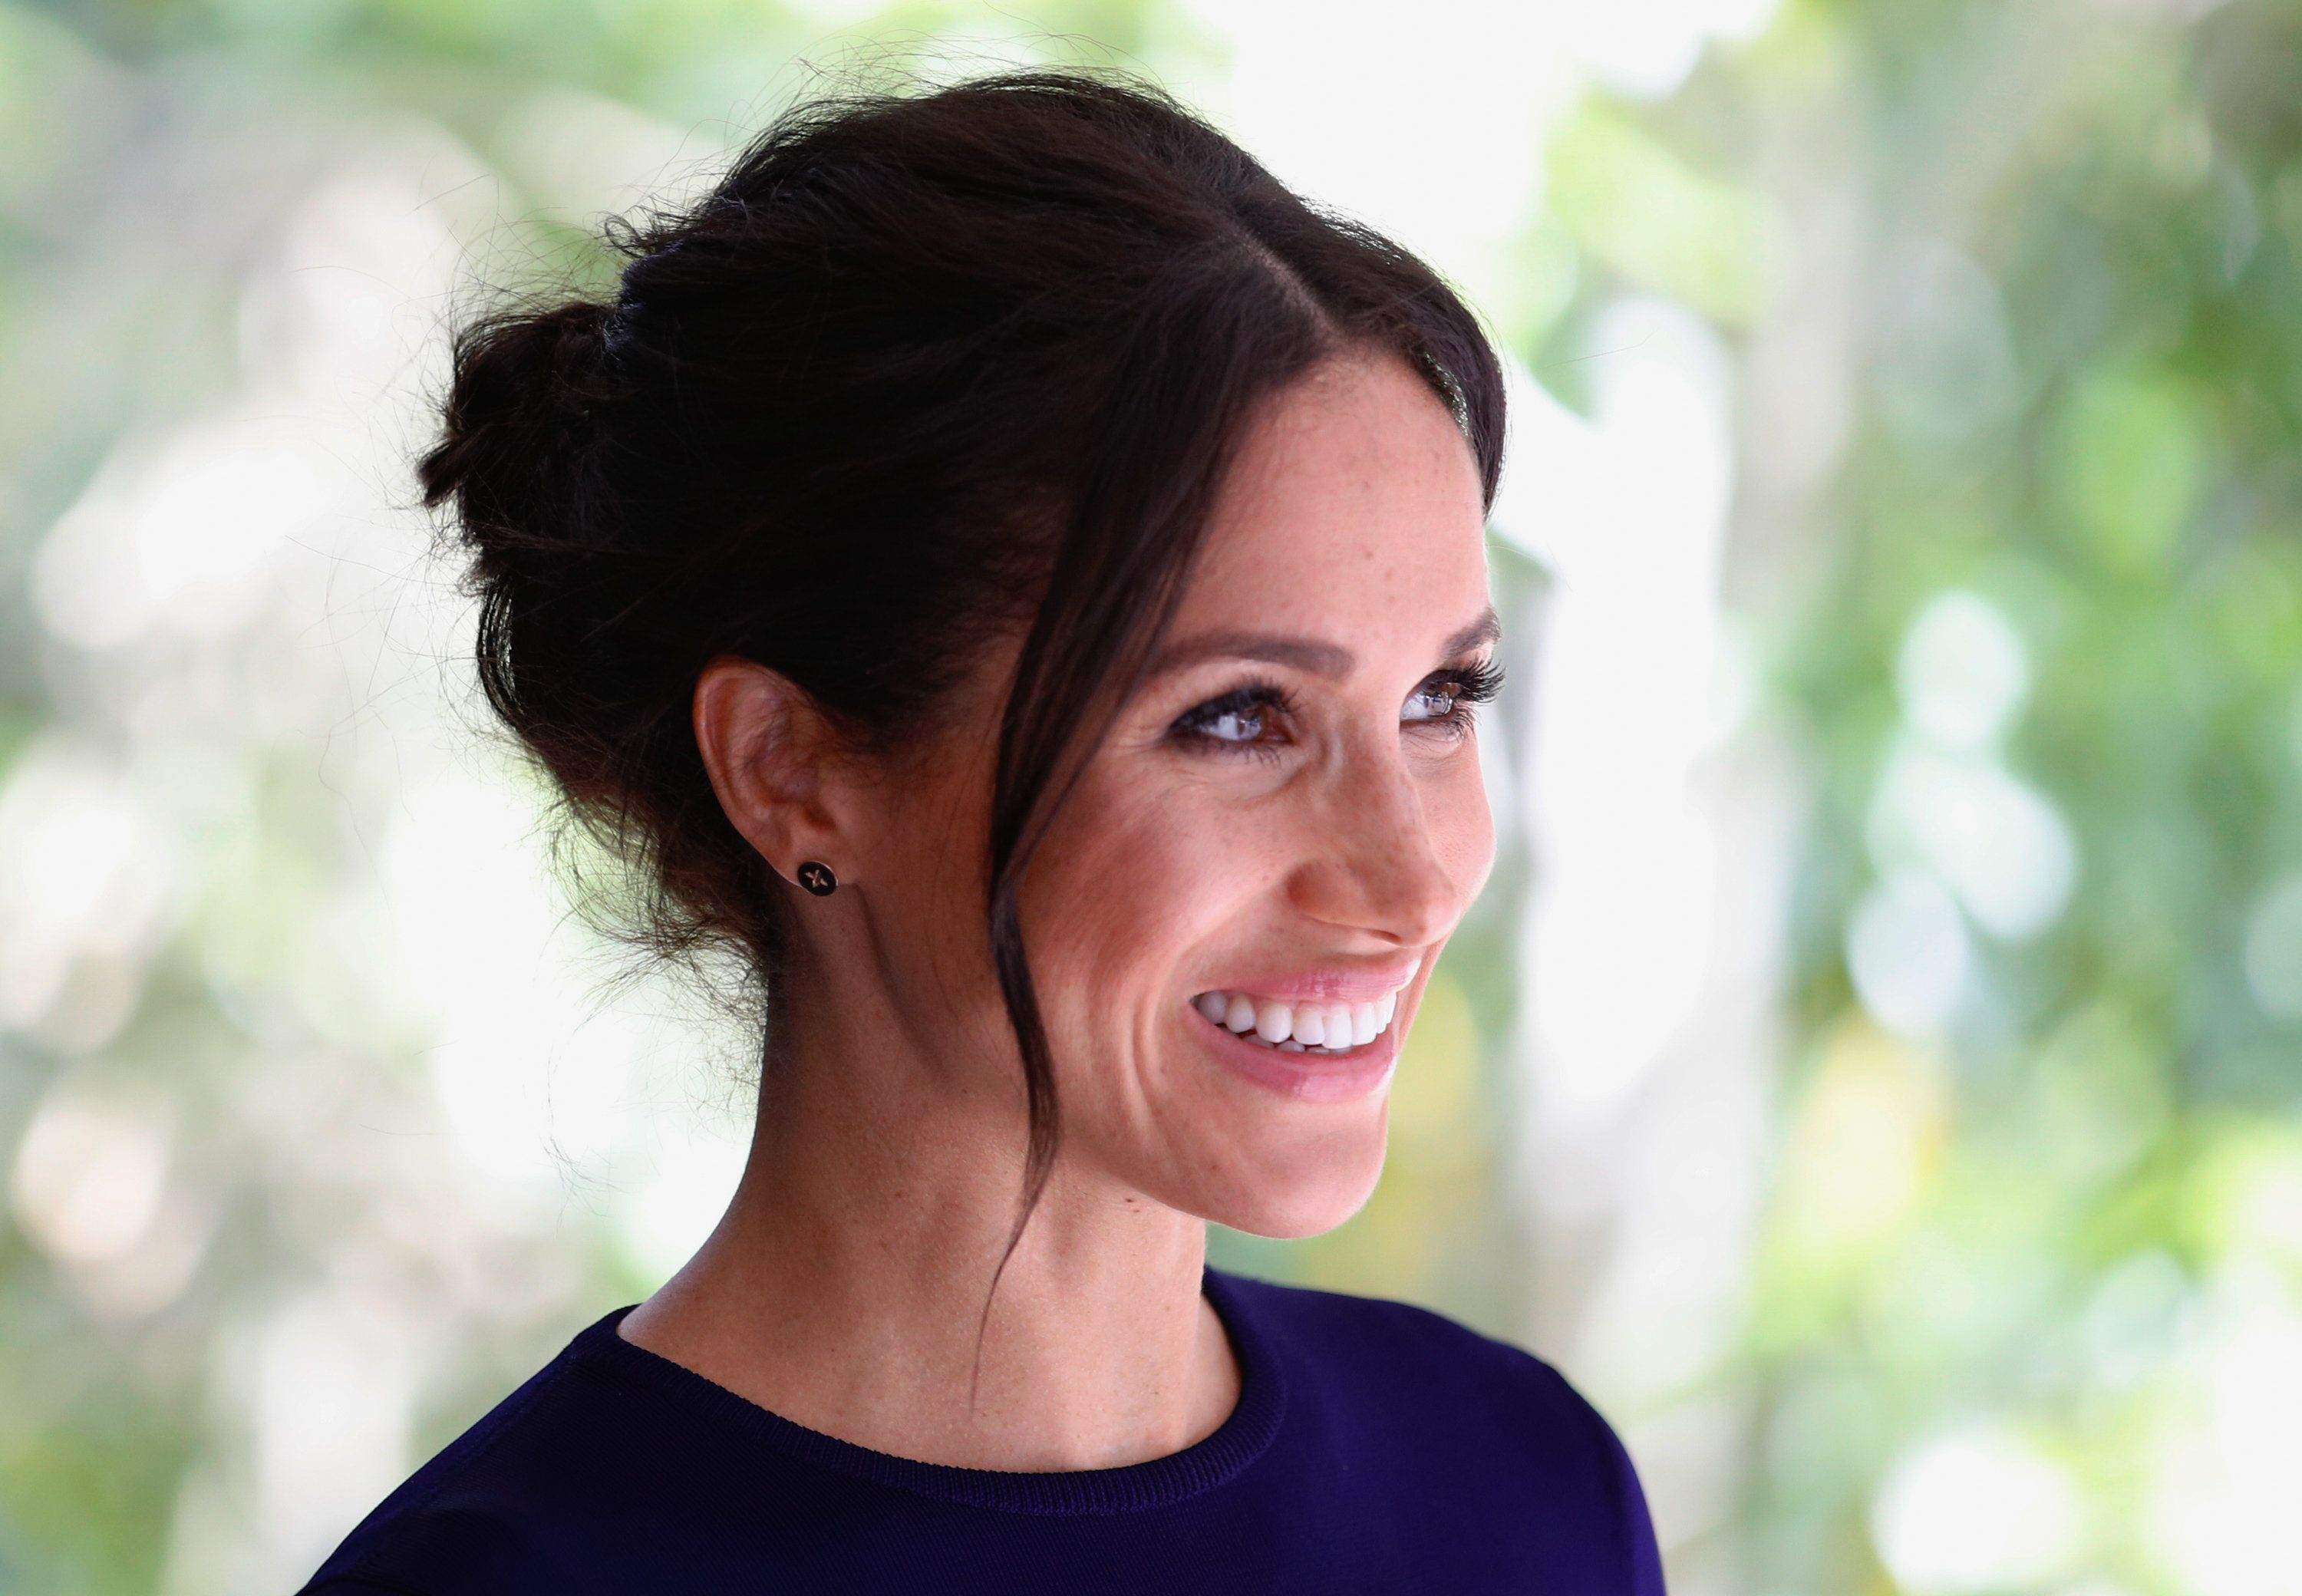 ROTORUA, NEW ZEALAND - OCTOBER 31:  (UK OUT FOR 28 DAYS) Meghan, Duchess of Sussex visits the National Kiwi Hatchery at Rainbow Springs on October 31, 2018 in Rotorua, New Zealand. The Duke and Duchess of Sussex are on their official 16-day Autumn tour visiting cities in Australia, Fiji, Tonga and New Zealand.  (Photo by Pool/Samir Hussein/WireImage)